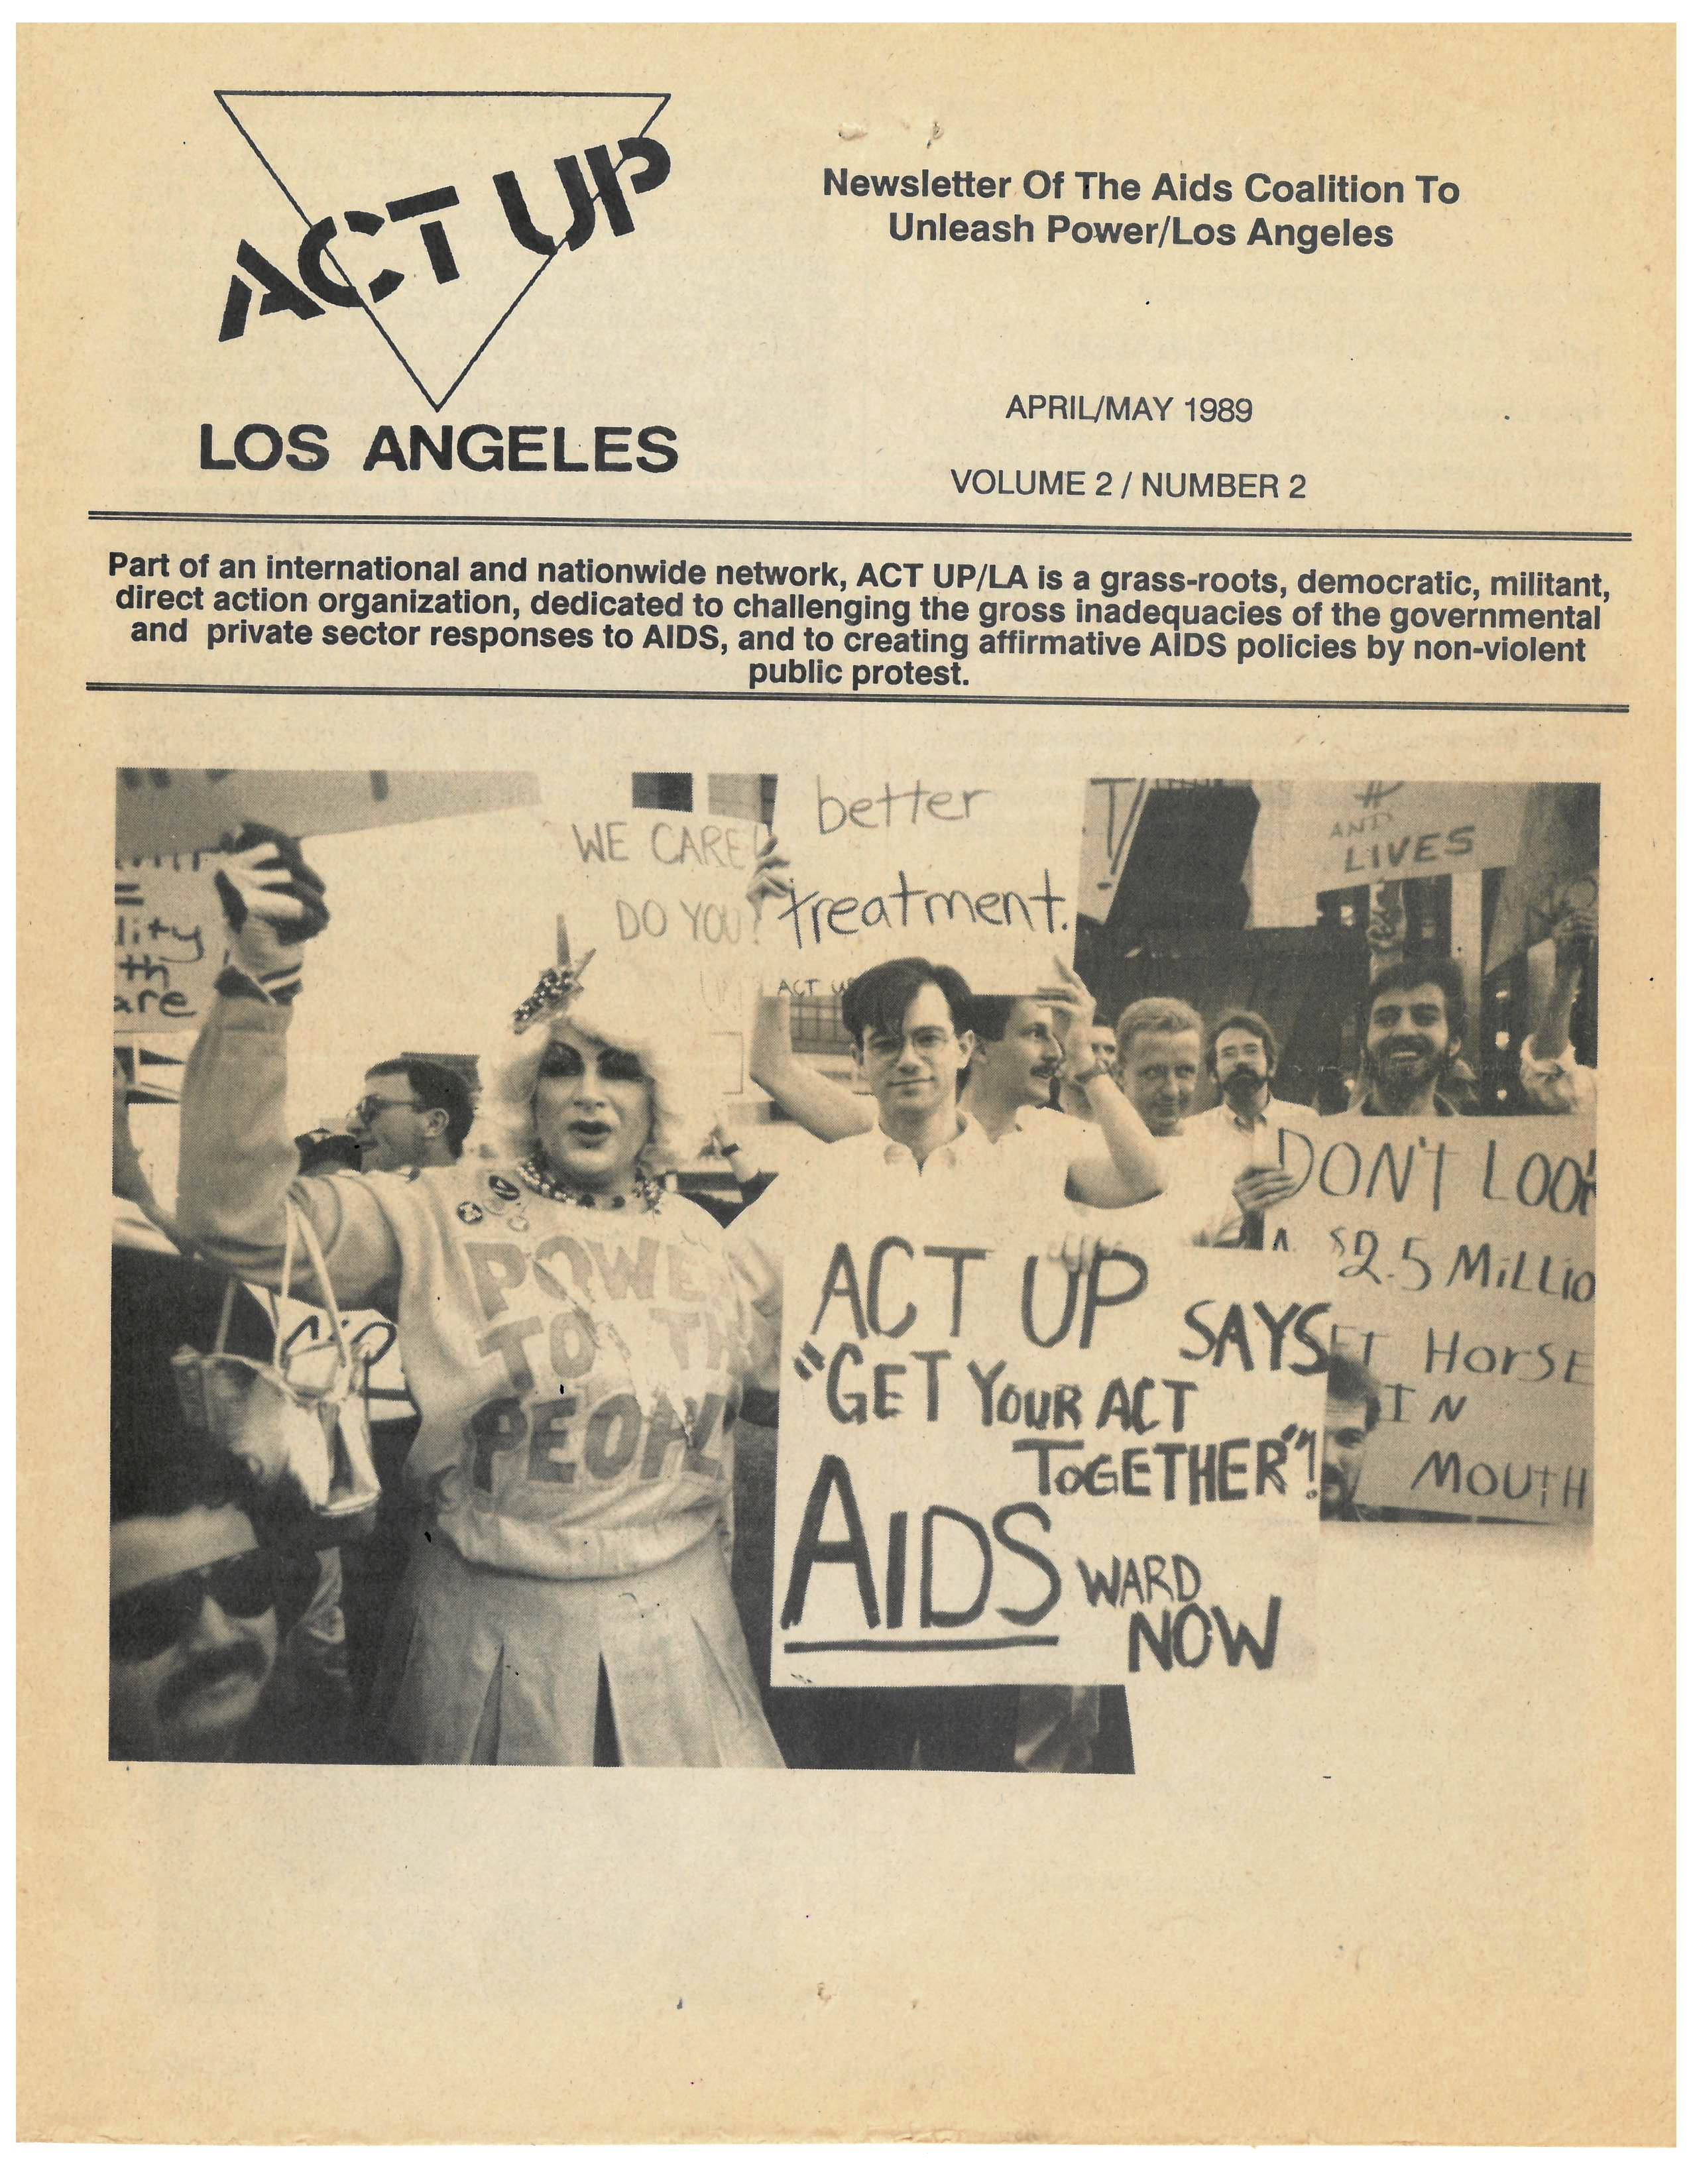 Newsletter of ACT UP/Los Angeles, published in April/May, 1989 / By: Courtesy Helene Schpak